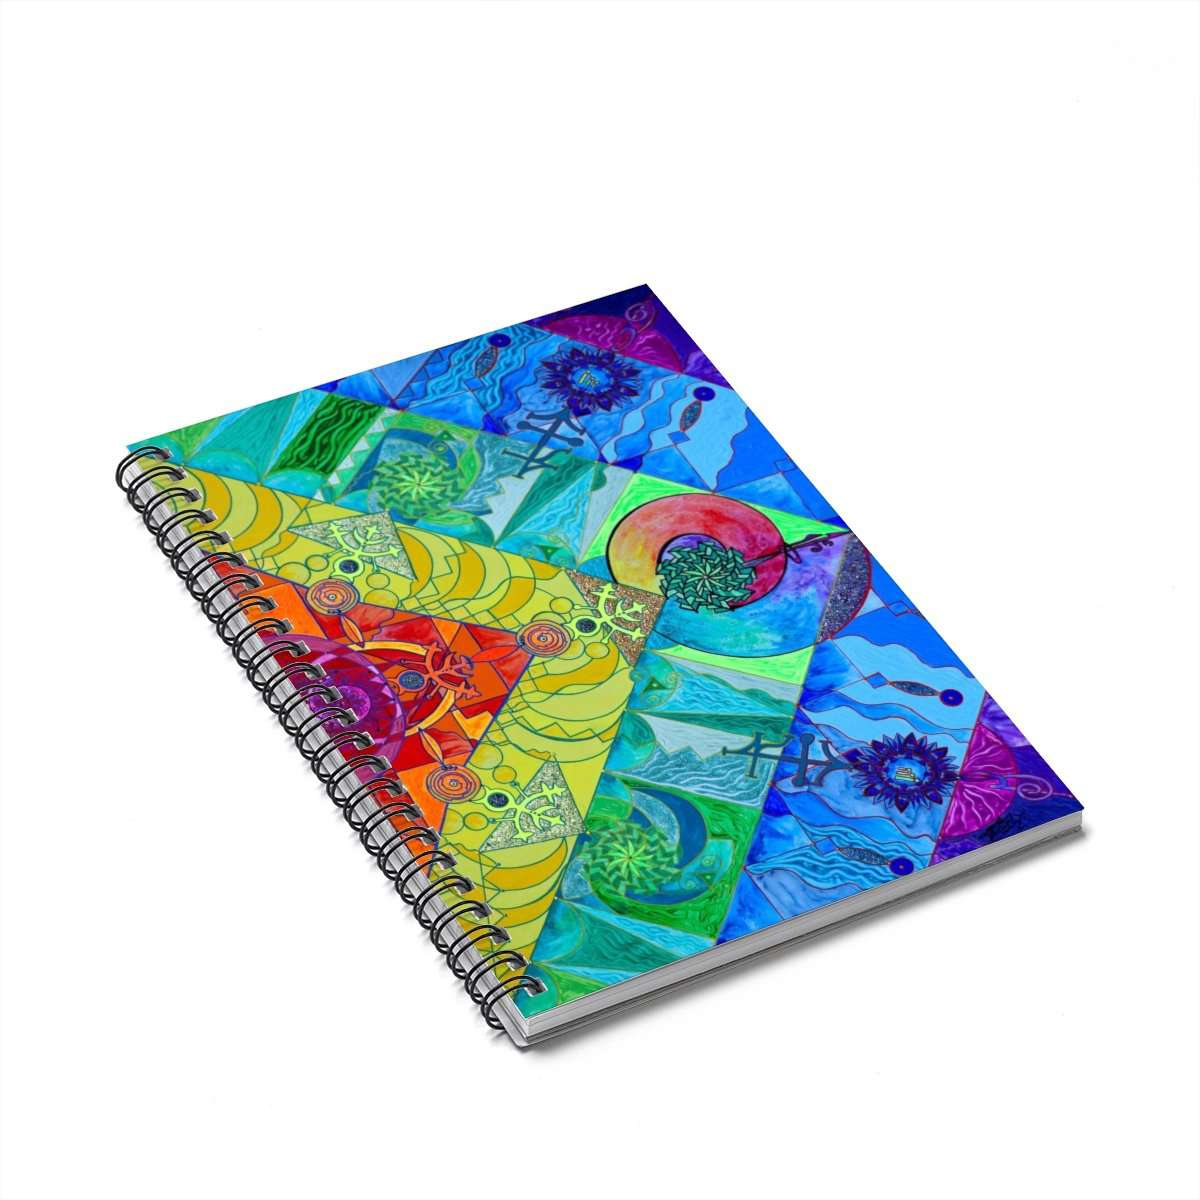 Expansion Pleiadian Light Work Model - Spiral Notebook